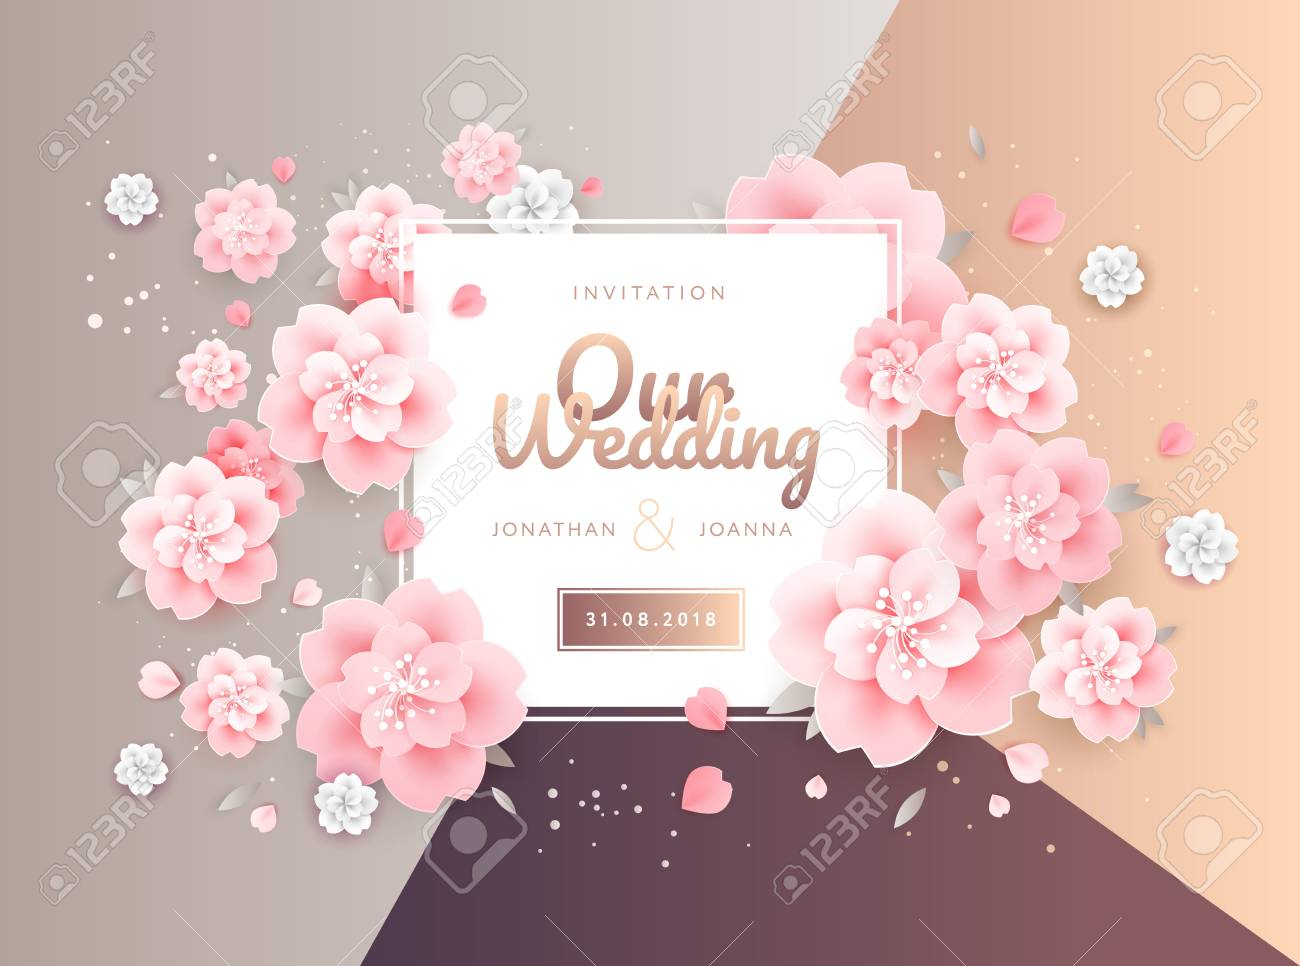 Wedding Invitation Card Background Template With Floral Designs